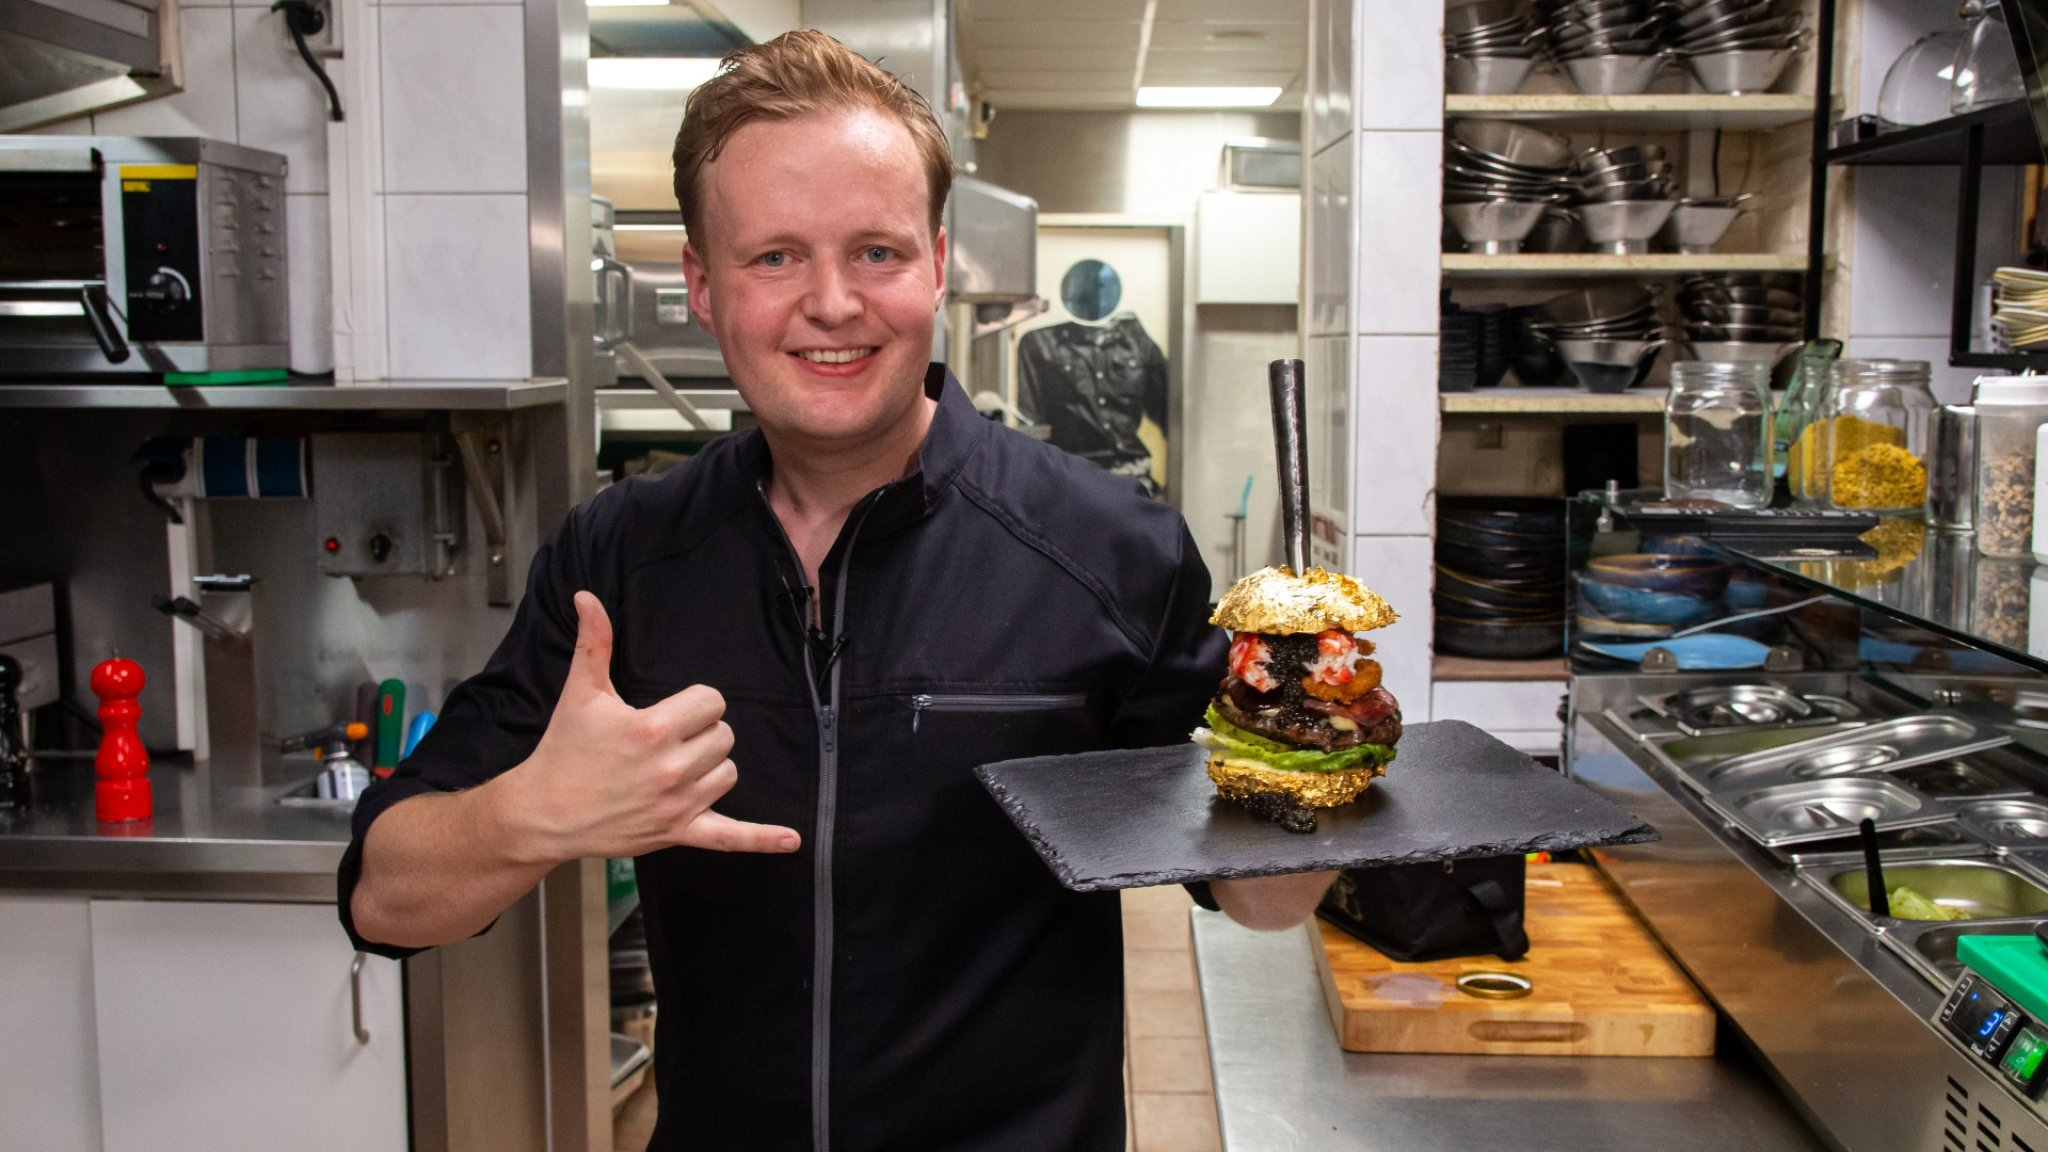 Robbert Jan's burger is now officially the most expensive in the world: 'Very cool'